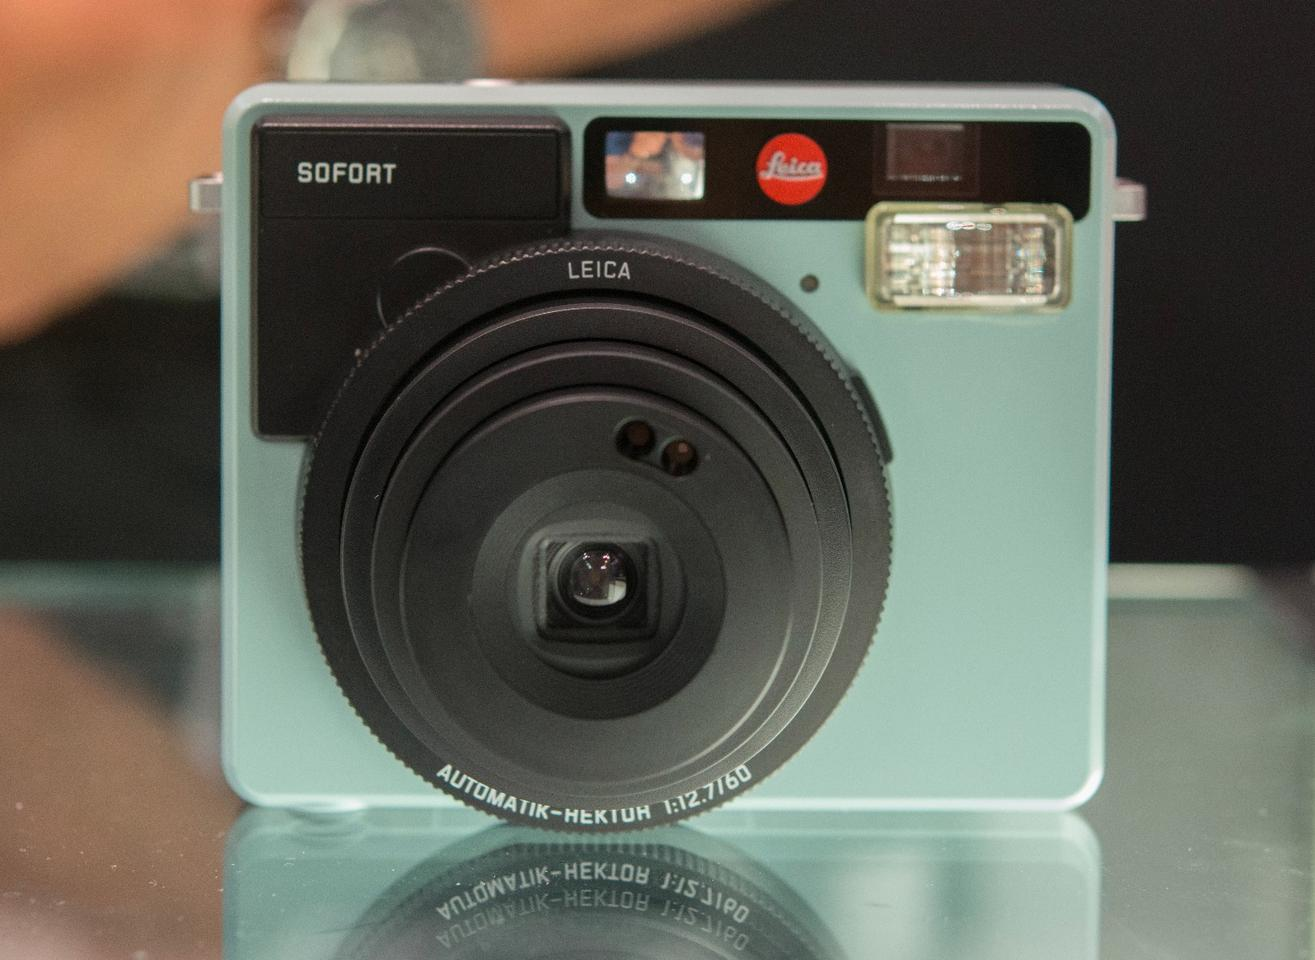 TheLeica Sofort instant camera has a boxy charm to it